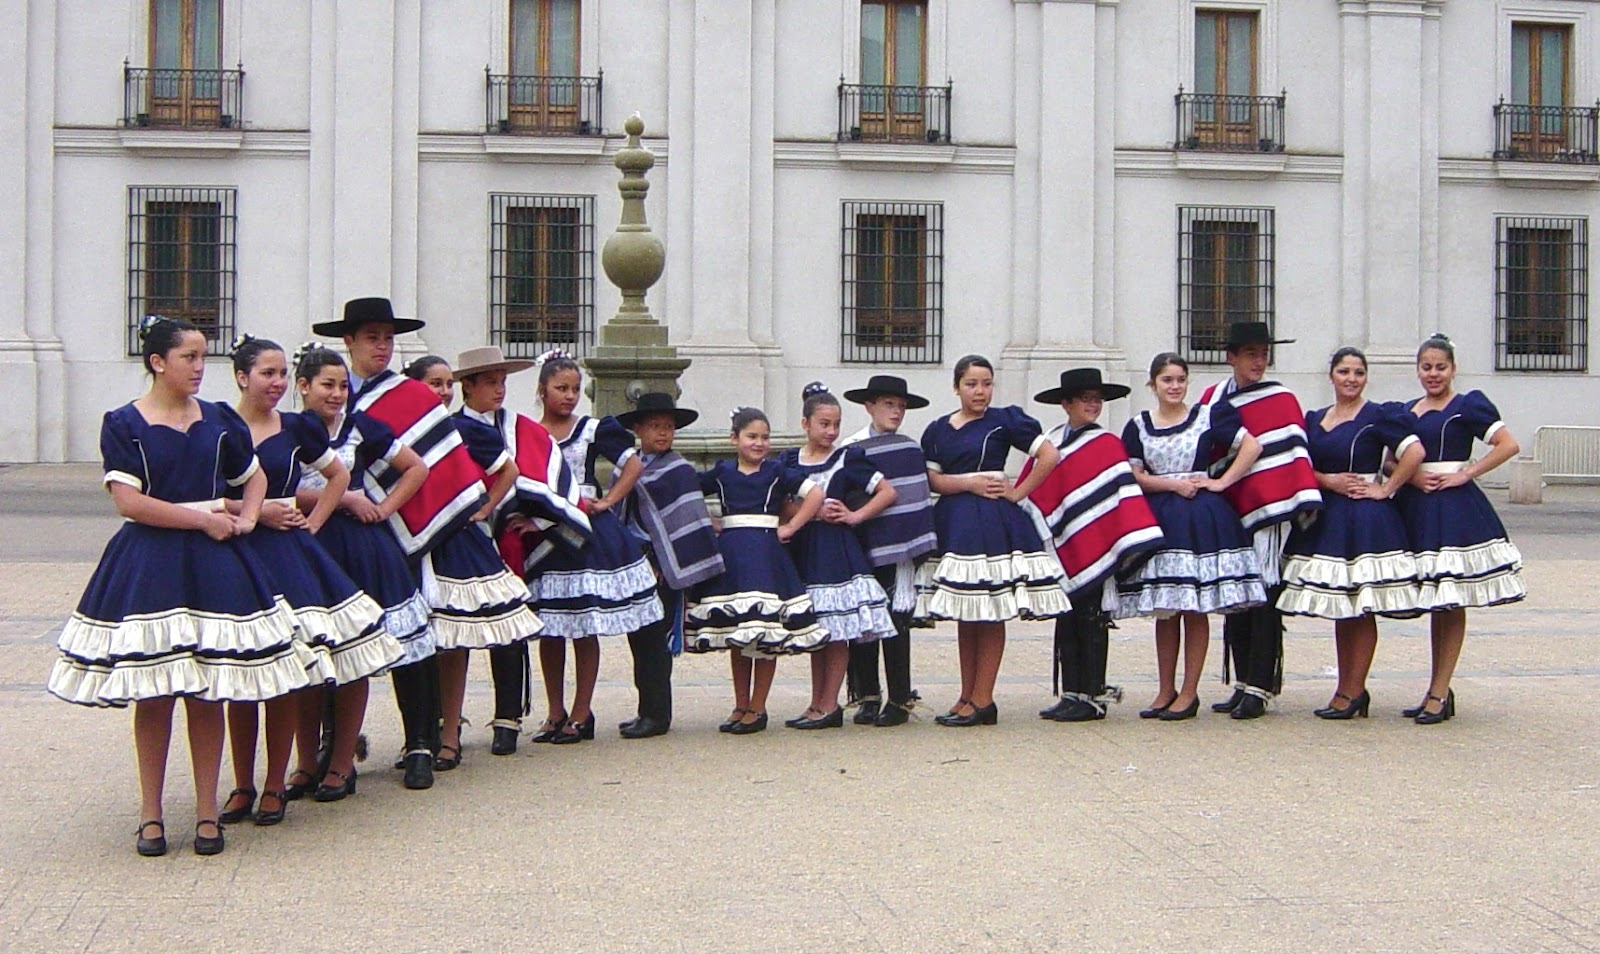 chilean culture and customs - photo #21